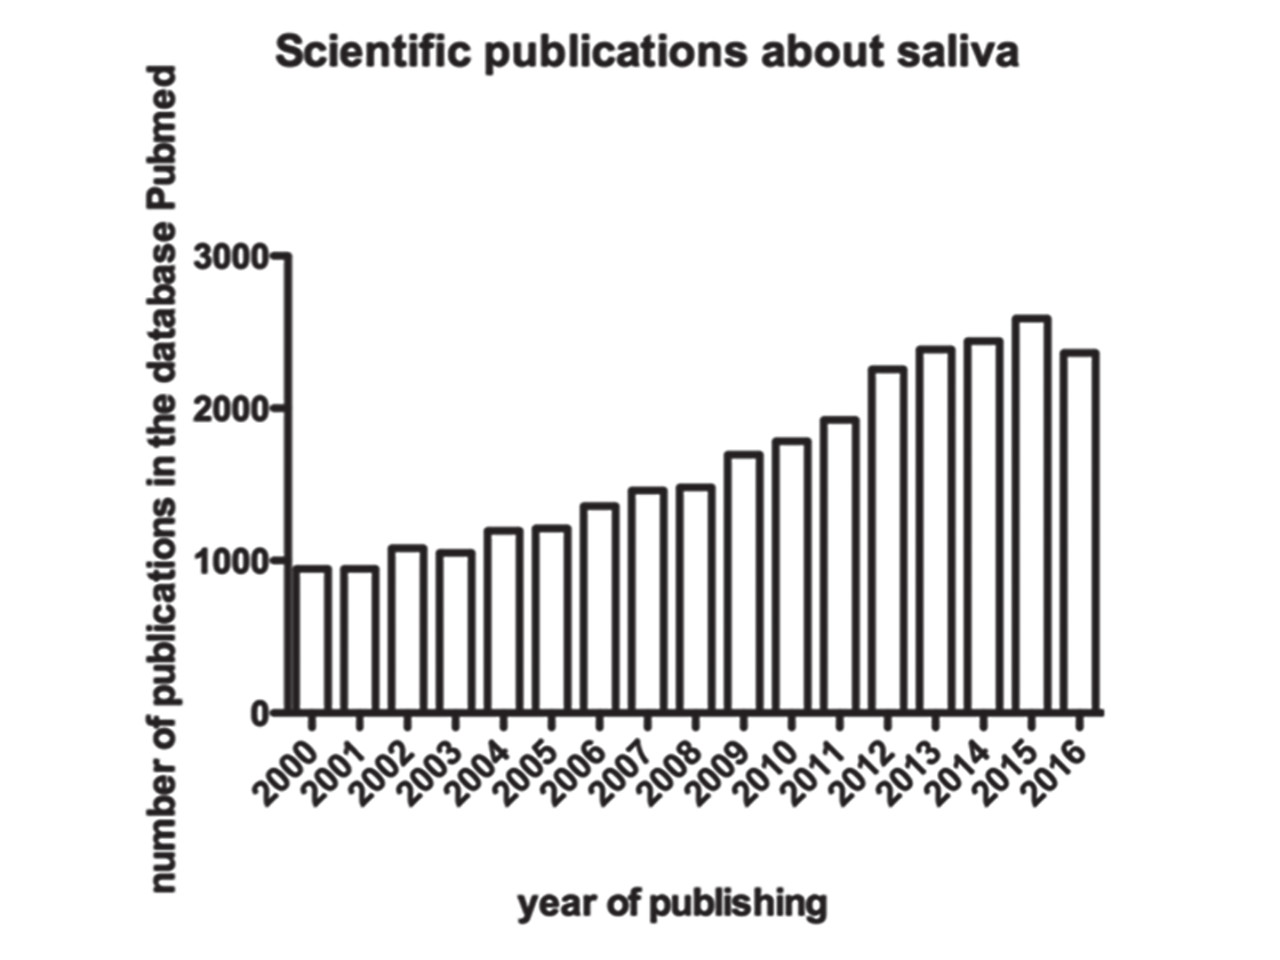 Increased interest in salivary research since 2000.